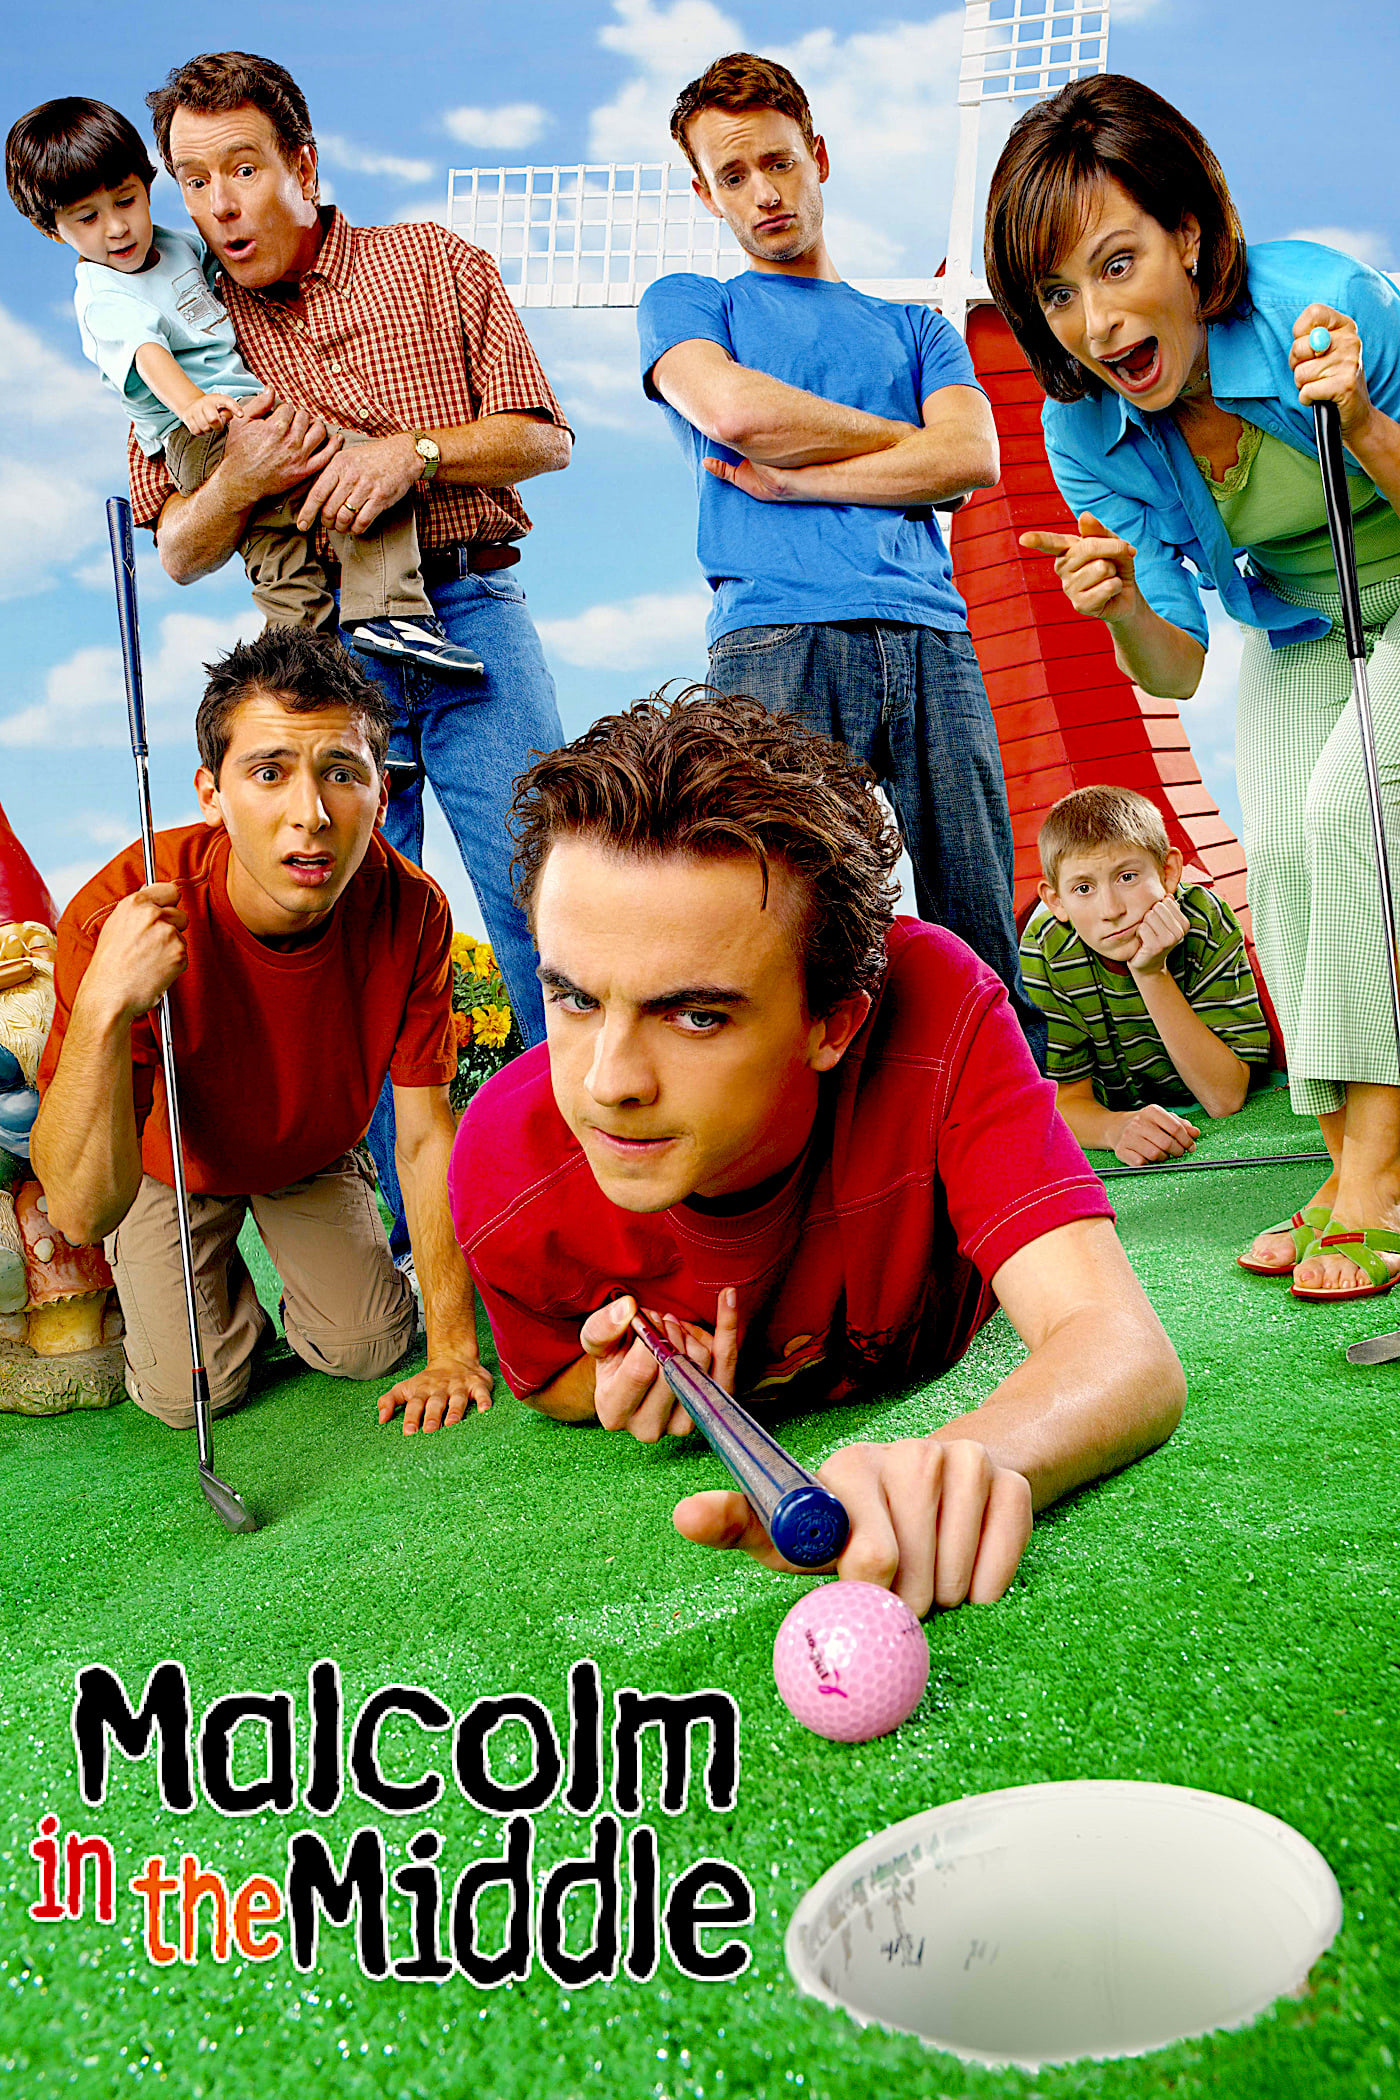 Malcolm in the Middle (2000)